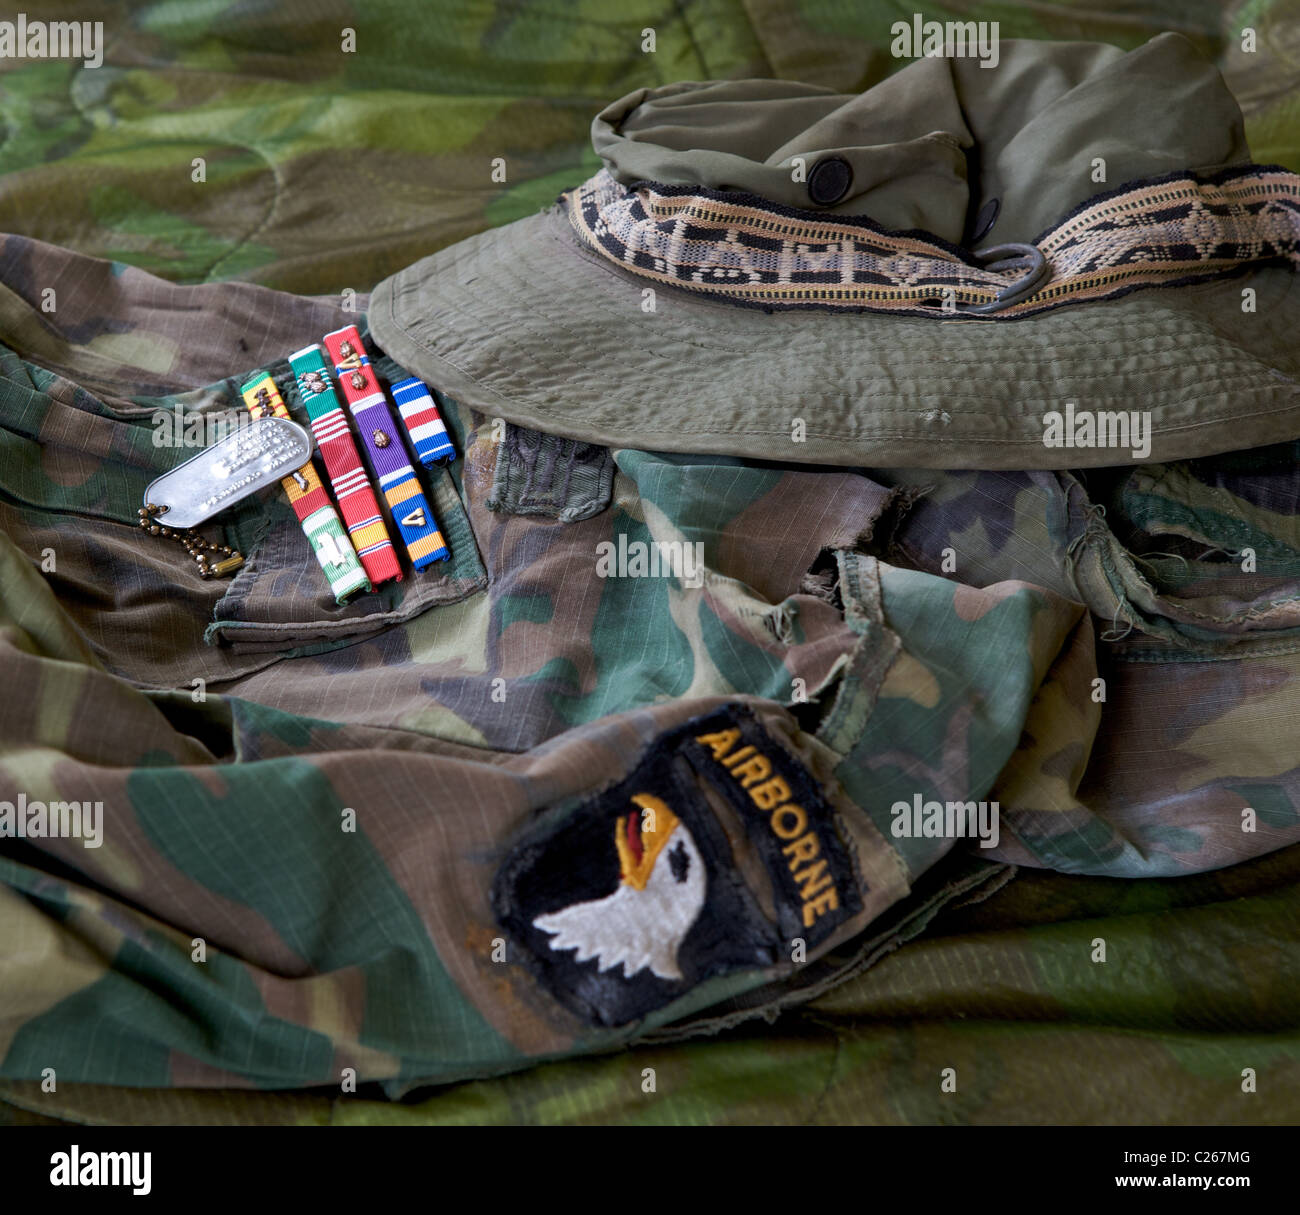 c6698c45c09b8 Camouflaged military jacket circa 1970 Vietnam with ribbons (Medals) dog  tag and boonie hat